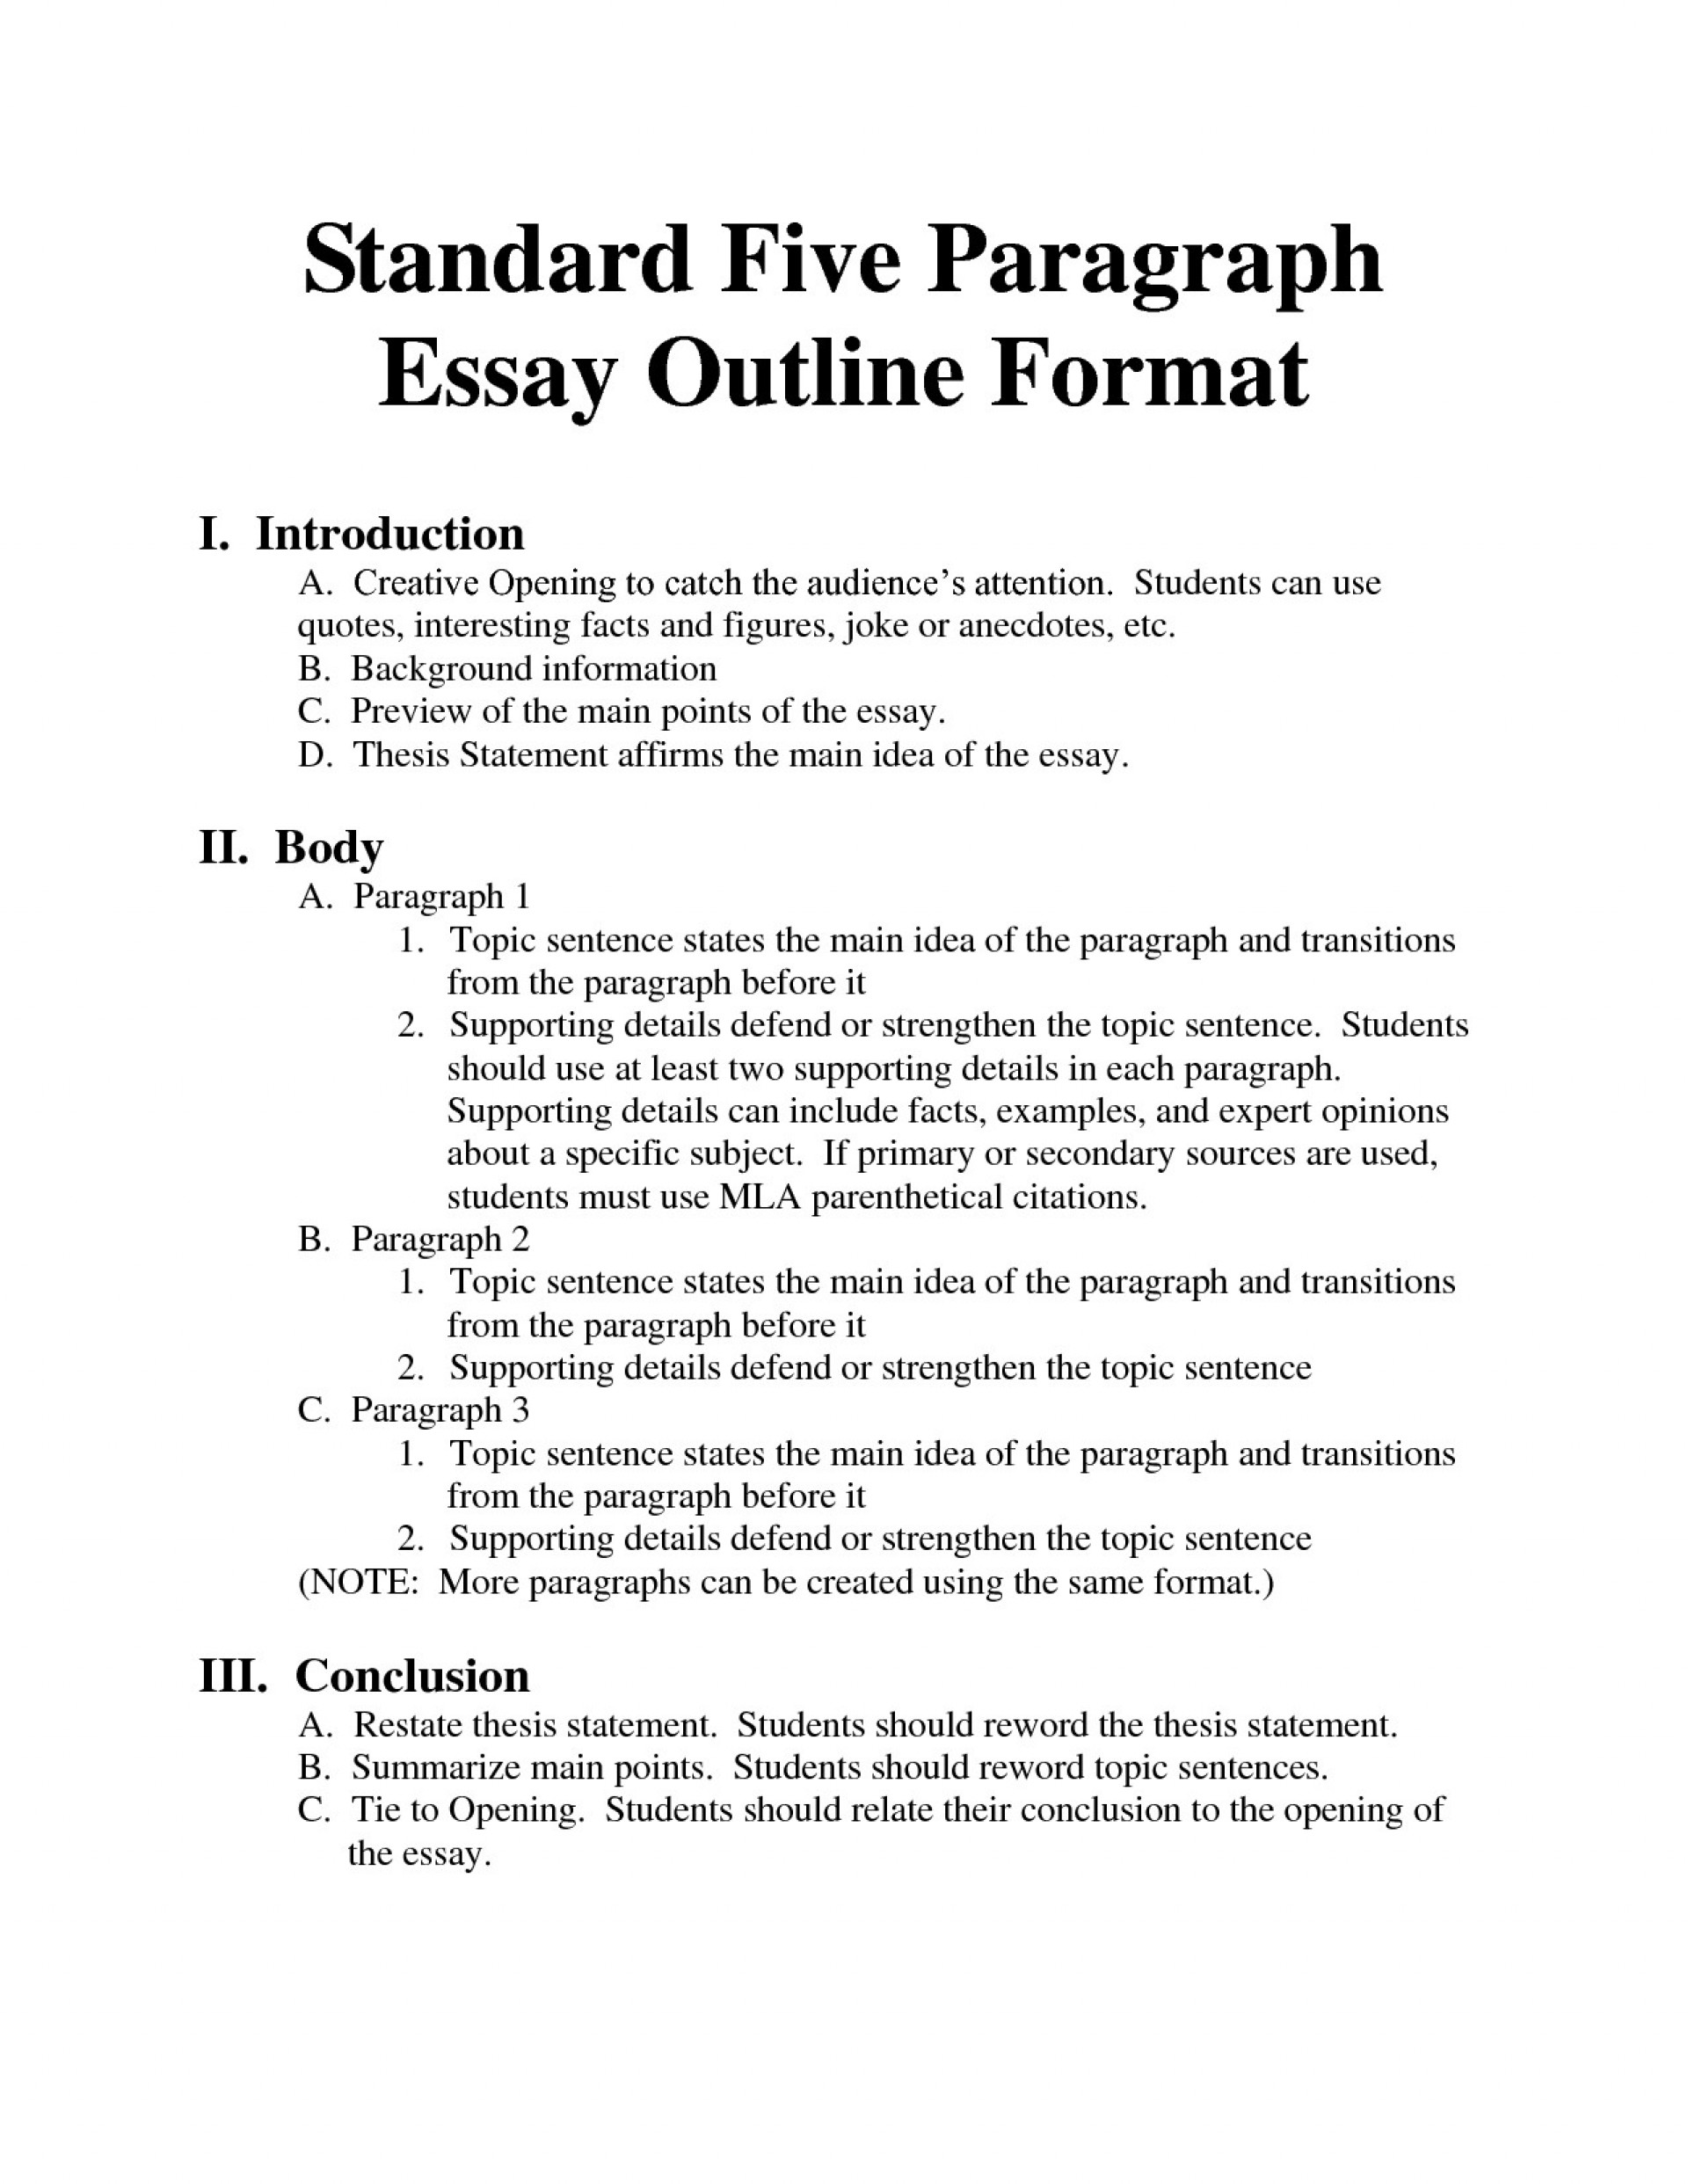 004 Argumentative Essays For College Refrence Template In Persuasive Level Exceptional Essay Examples Topics 1920